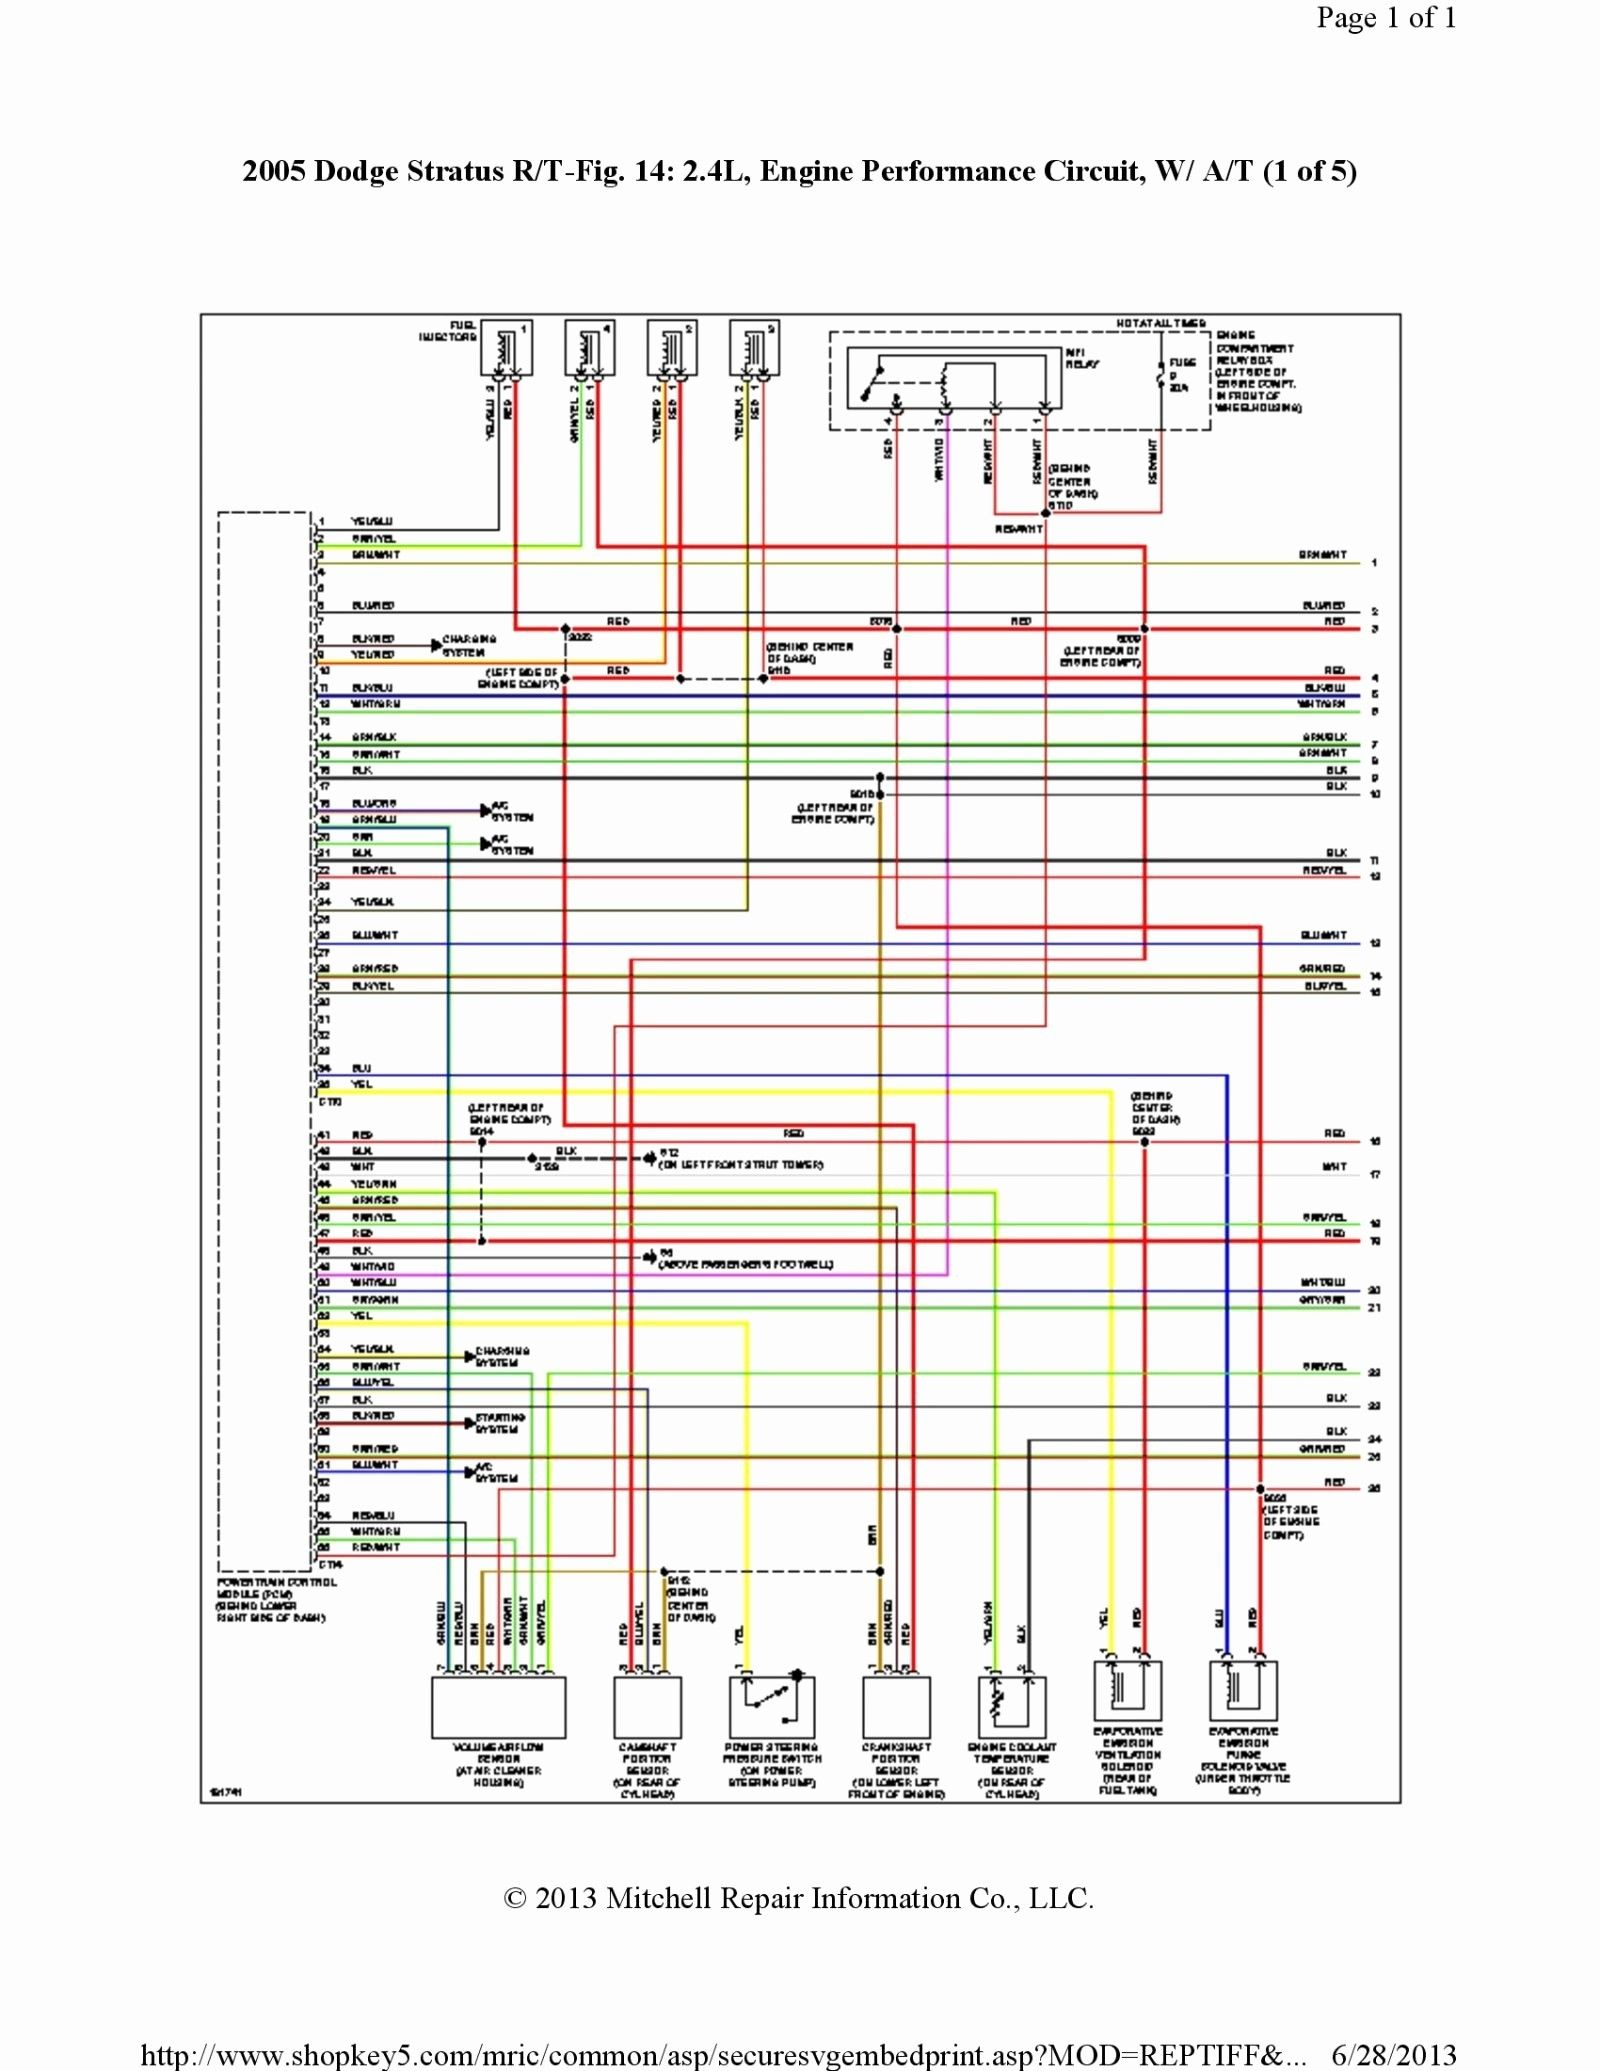 [DIAGRAM_5LK]  New 2004 Dodge Ram 1500 Infinity Wiring Diagram #diagram #diagramsample  #diagramtemplate #wiringdiagram #diagramch… | 2004 dodge ram 1500, Dodge  ram 1500, Dodge ram | 2004 Radio Wiring Dodge 1500 Infinity Images |  | Pinterest